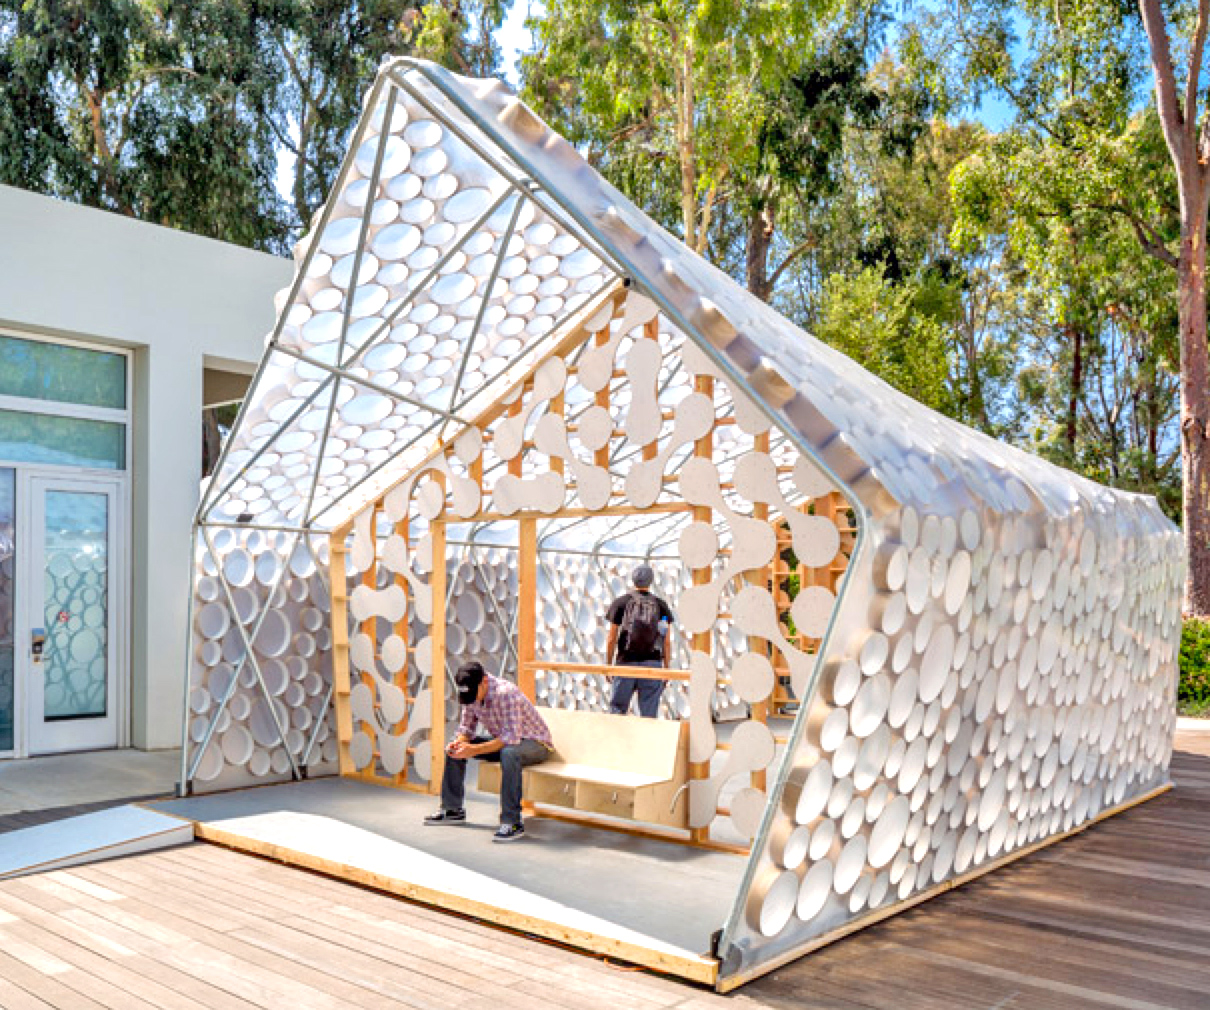 Recyclable materials inhabitat green design for Waste material in home